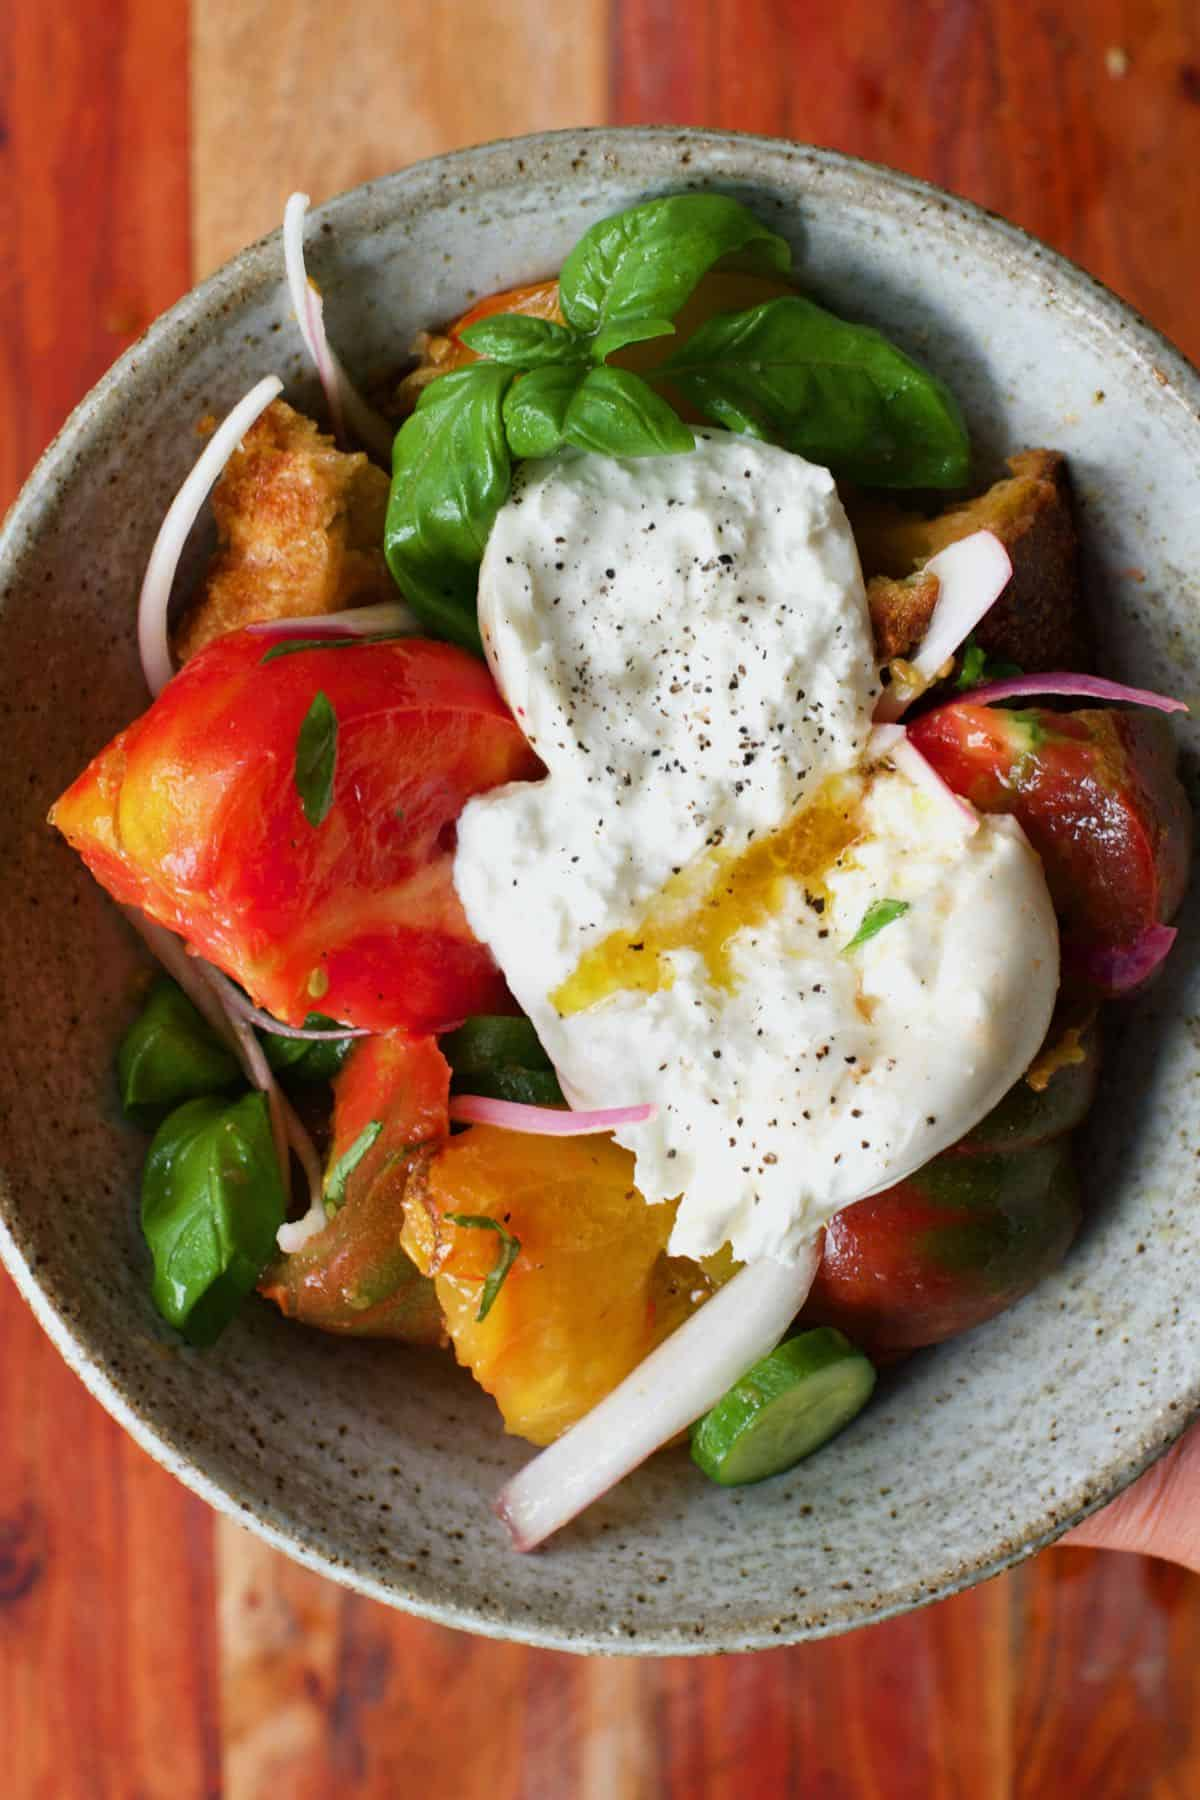 Panzanella salad topped with cheese